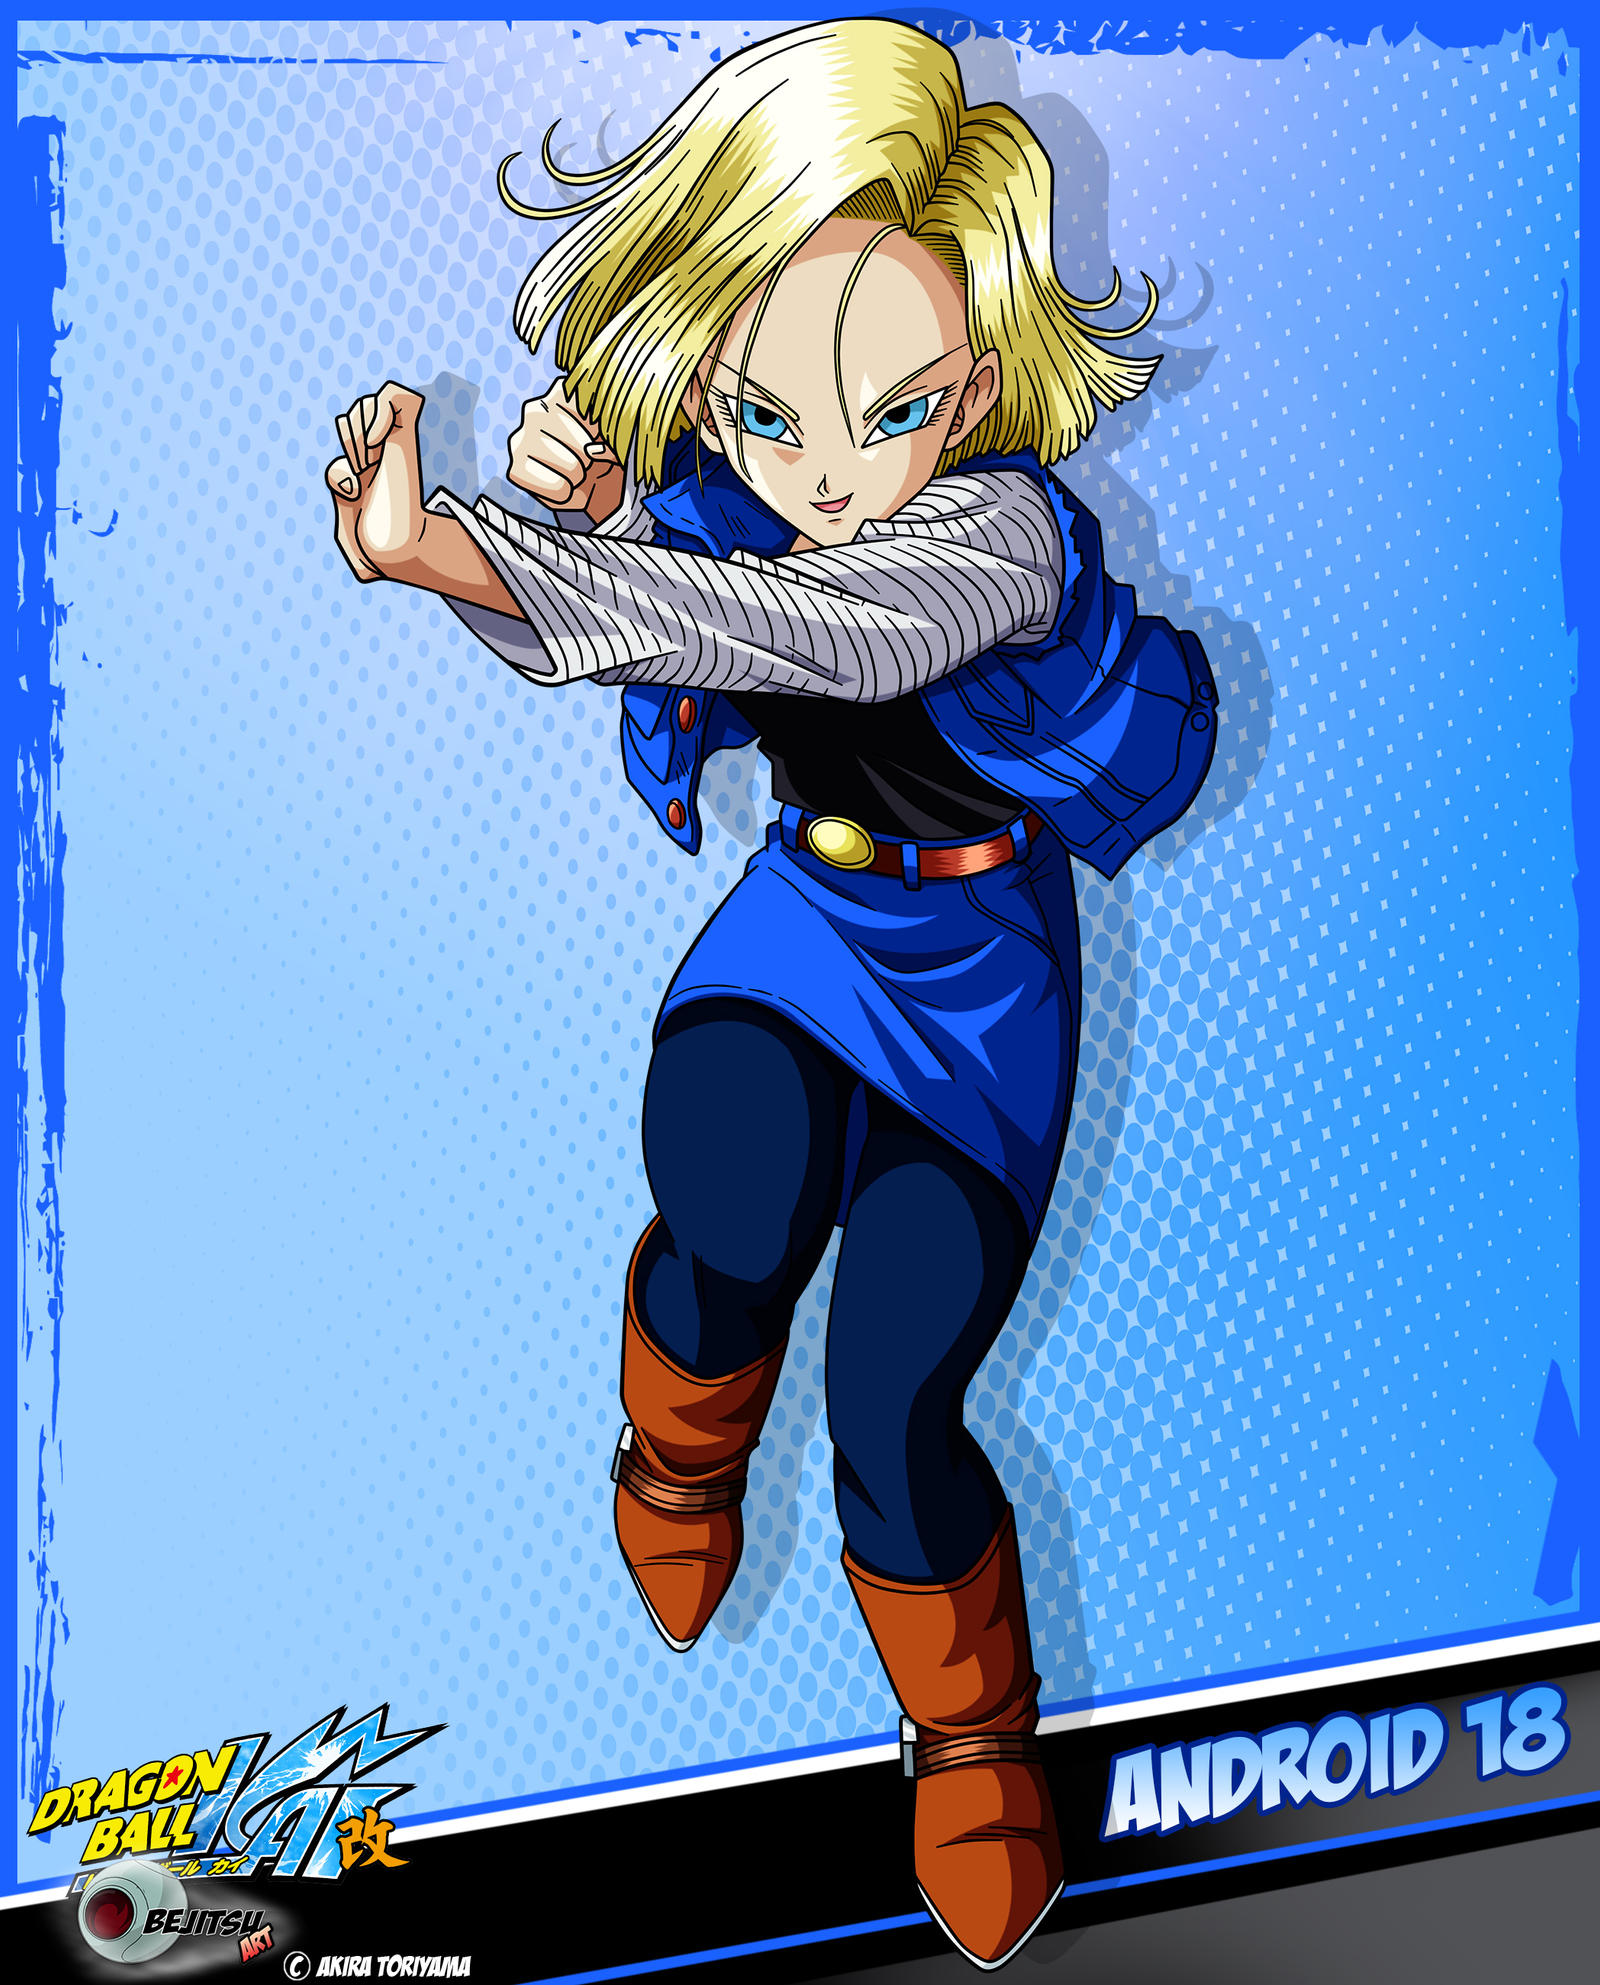 Android 18, Dragonball Z,